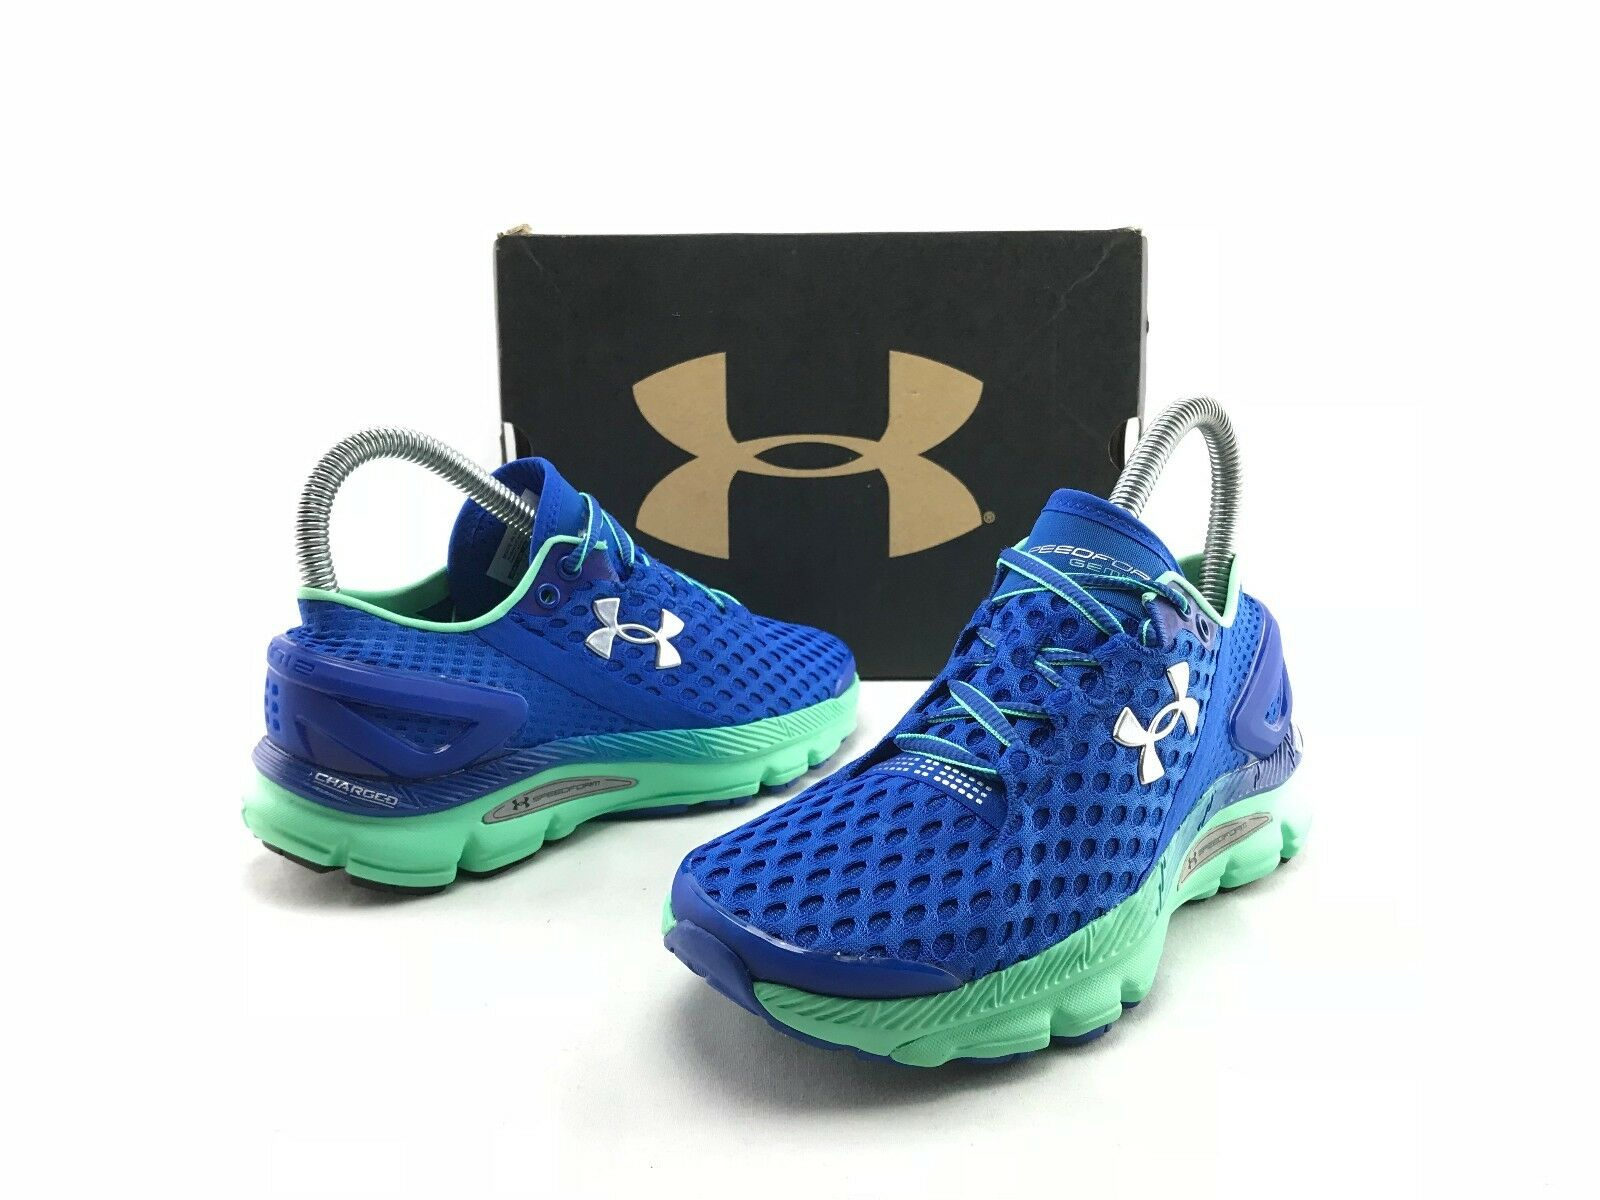 NEW Under Armour Speedform Gemini 2 femmes 's bleu Running Sneakers US 5 B675